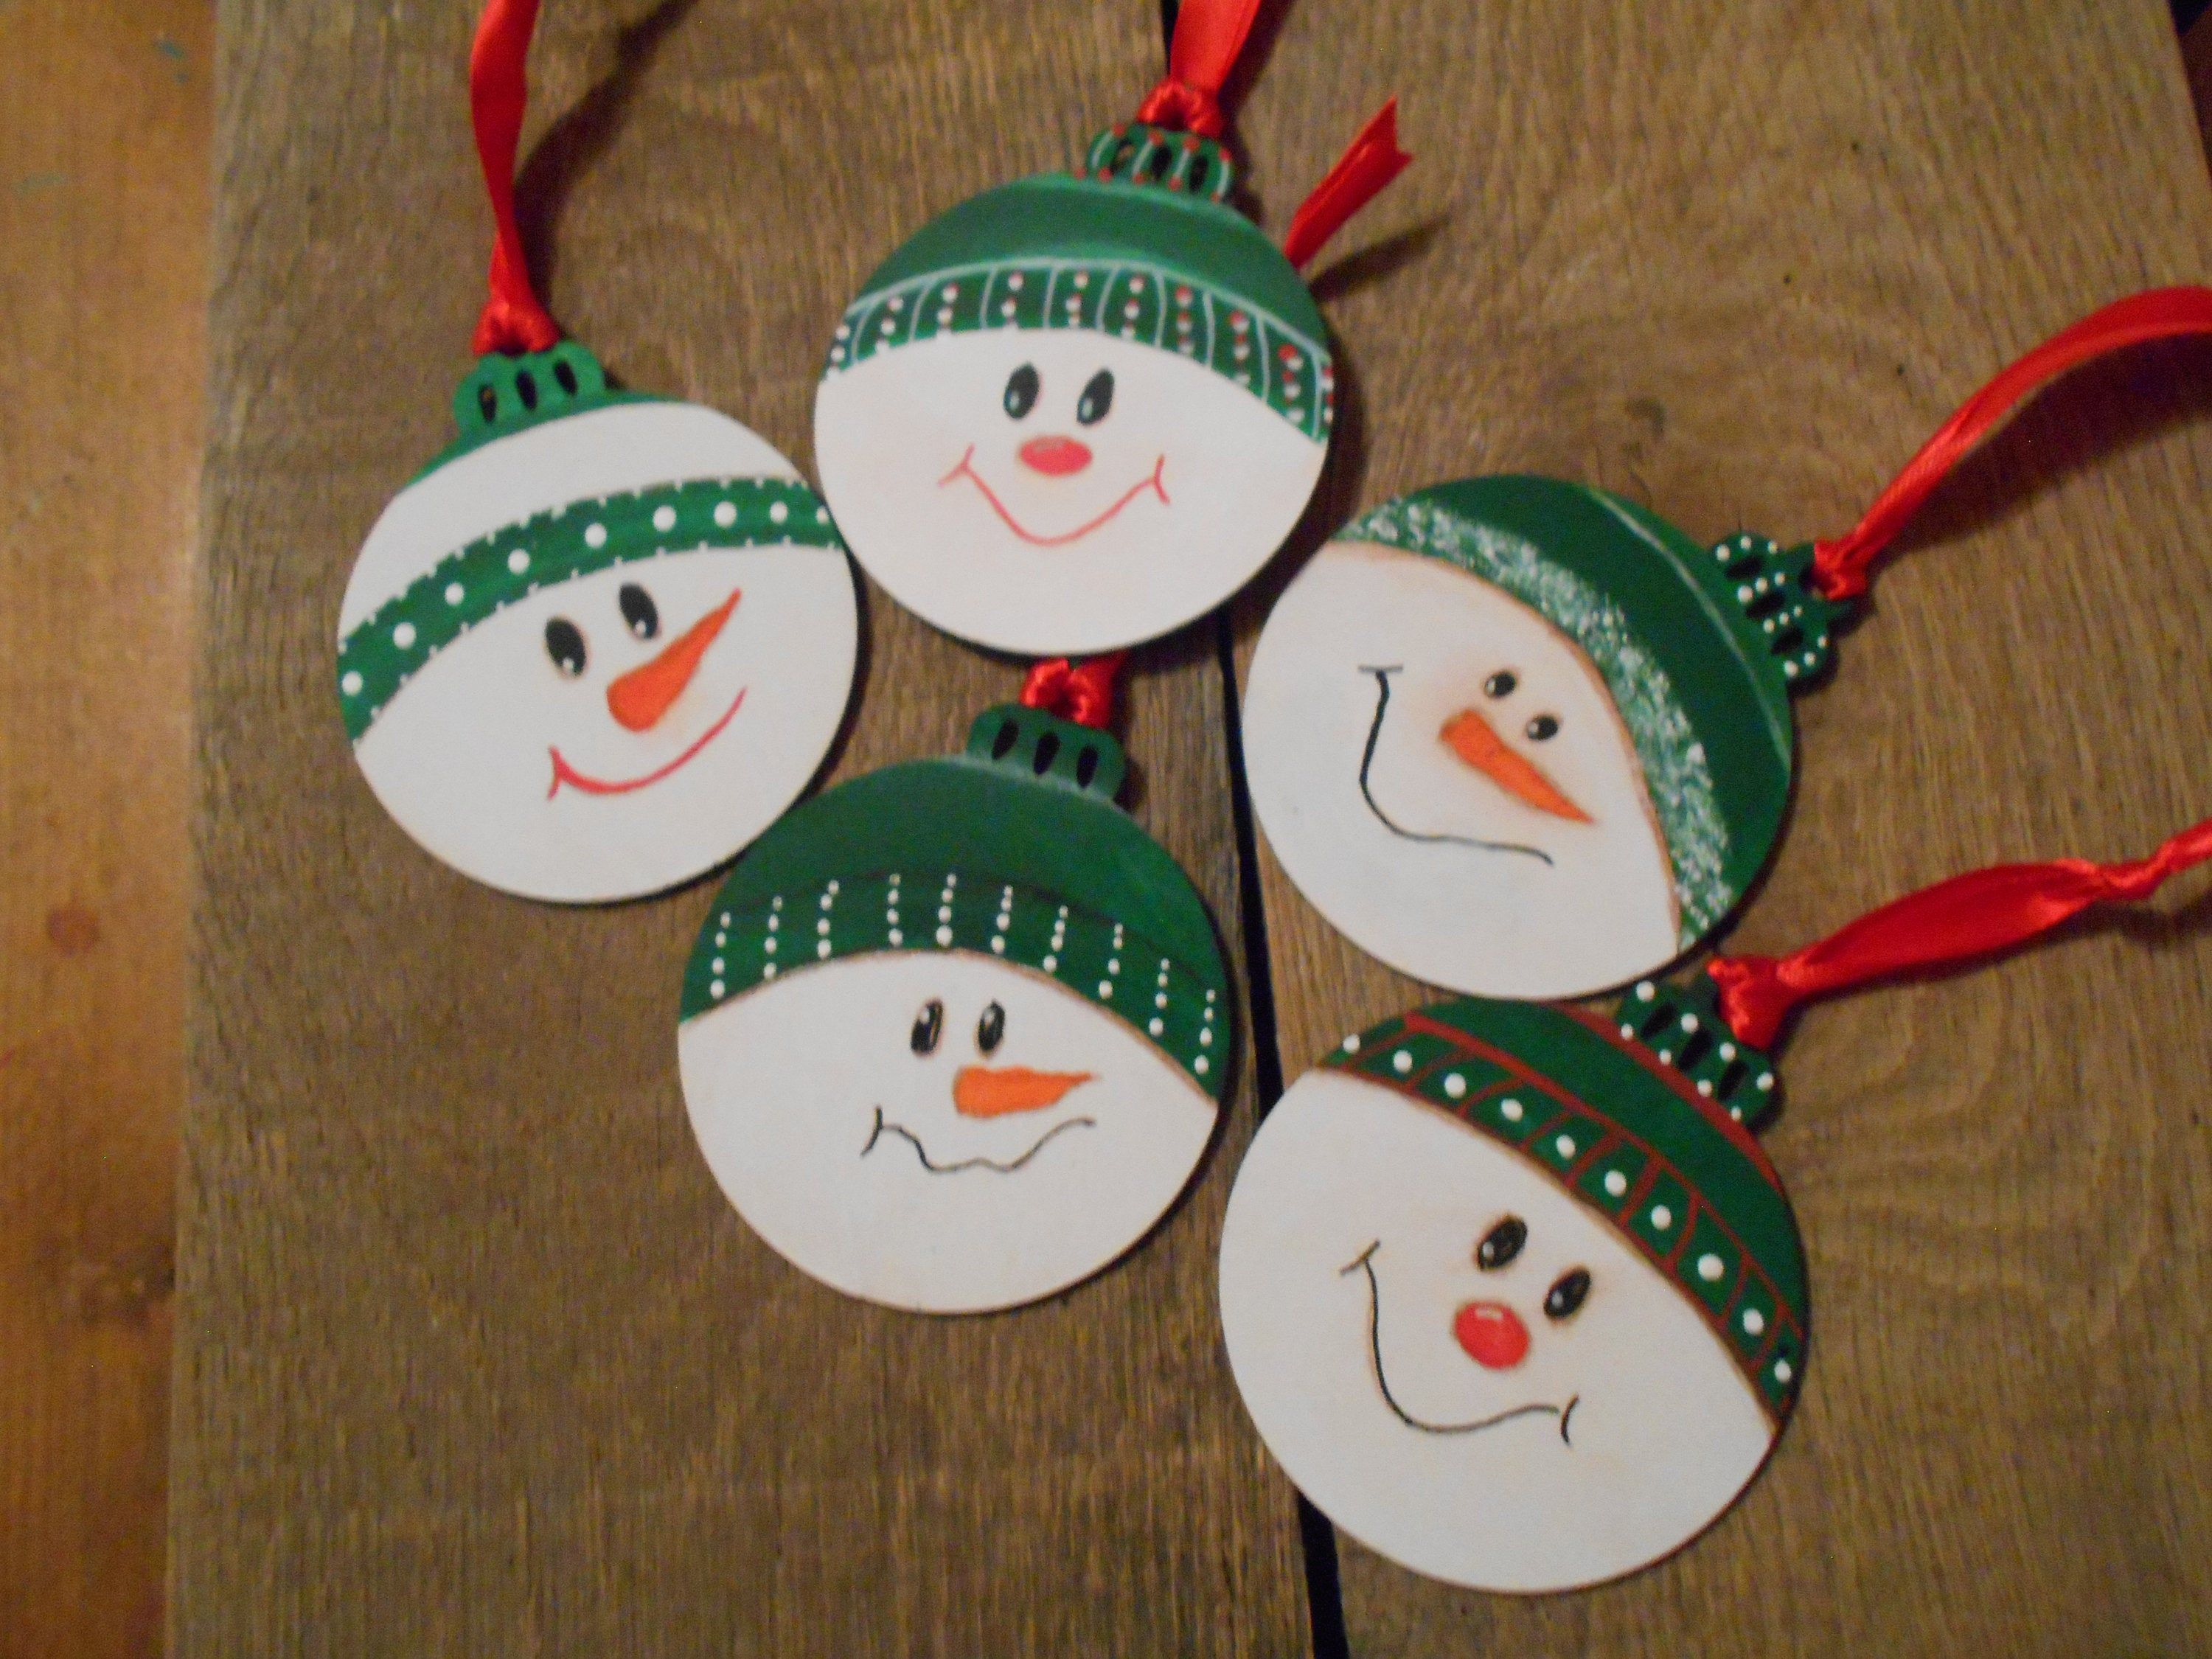 Hand Painted Wooden Snowman Ornaments Etsy Christmas Ornament Crafts Wood Christmas Ornaments Letter Ornaments